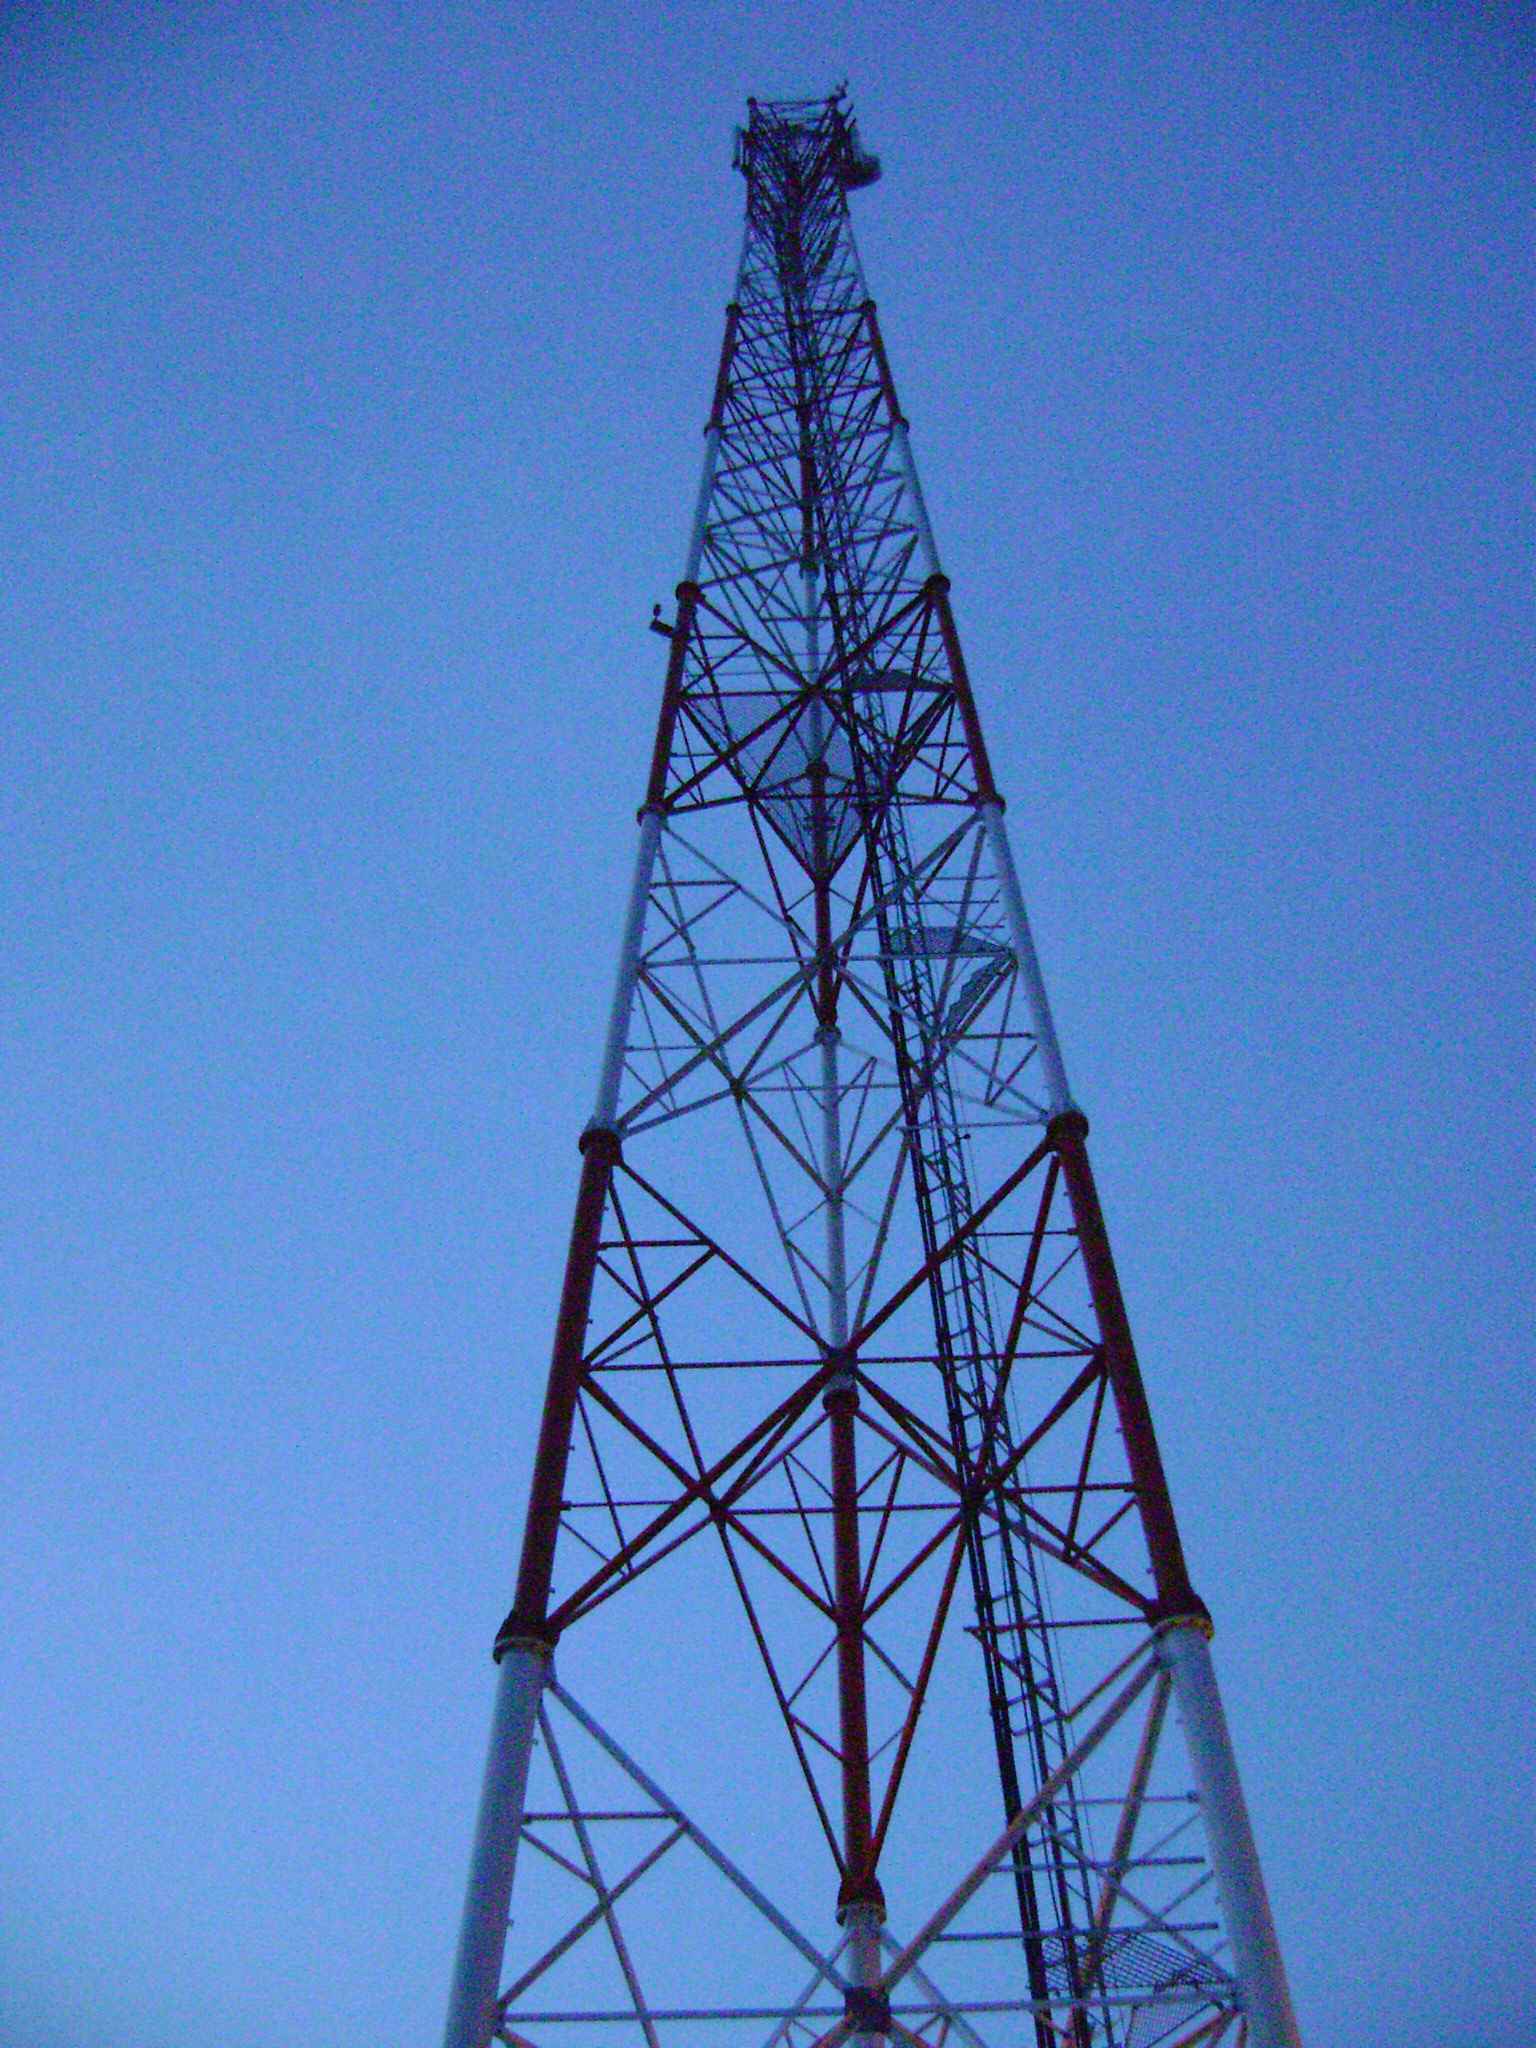 Cell-Tower-Ghana-Increasingly-mobile-network-operators-all-over-Africa-are-looking-at-sharing-wireless-towers-to-save-on-microwave-radio-and-other-infrastructure-costs-06-Dec-2012-Aviat-blog